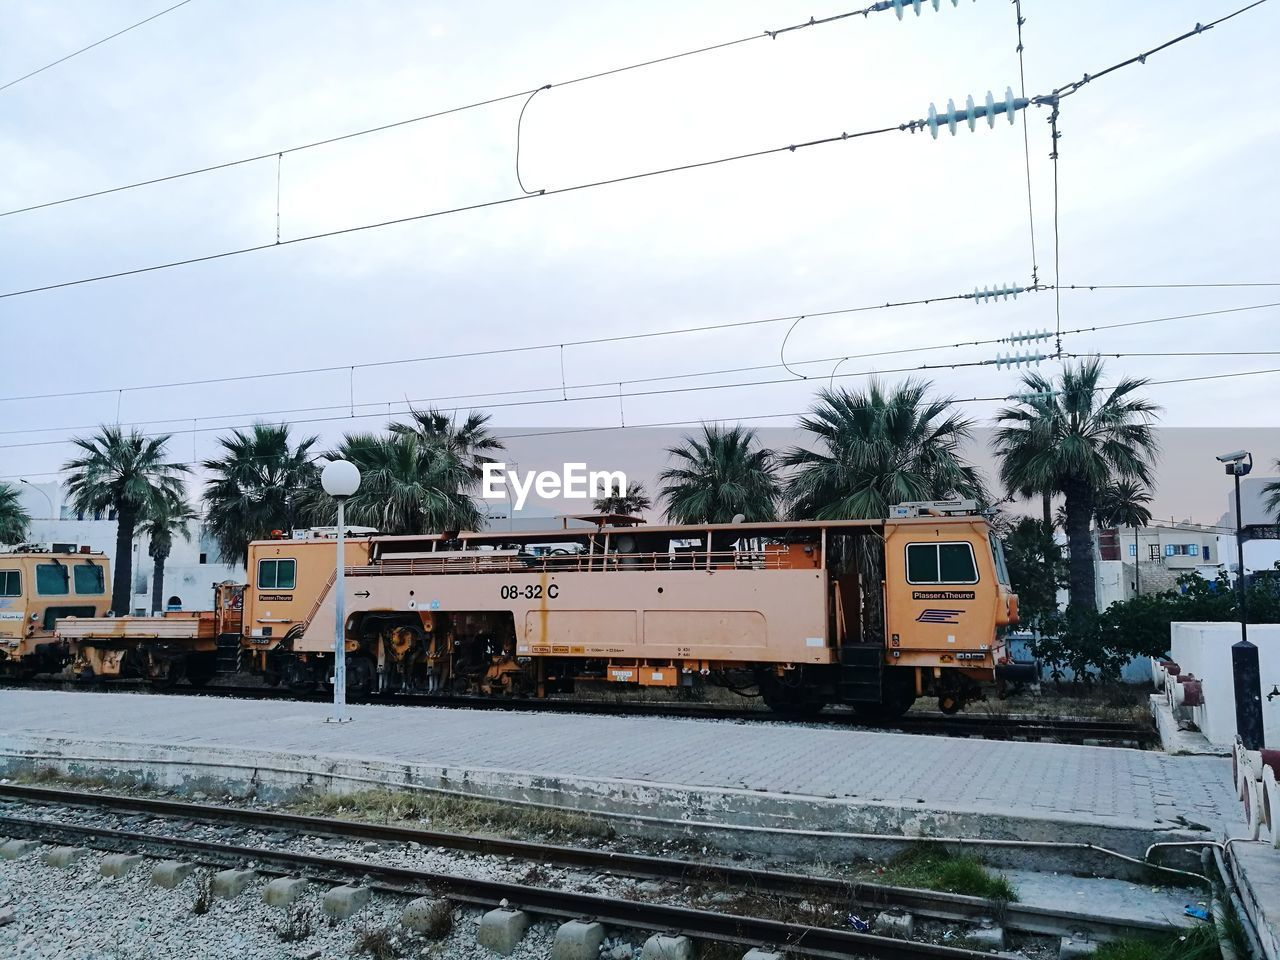 railroad track, transportation, cable, mode of transport, rail transportation, power line, train - vehicle, sky, day, public transportation, outdoors, electricity pylon, land vehicle, no people, tree, nature